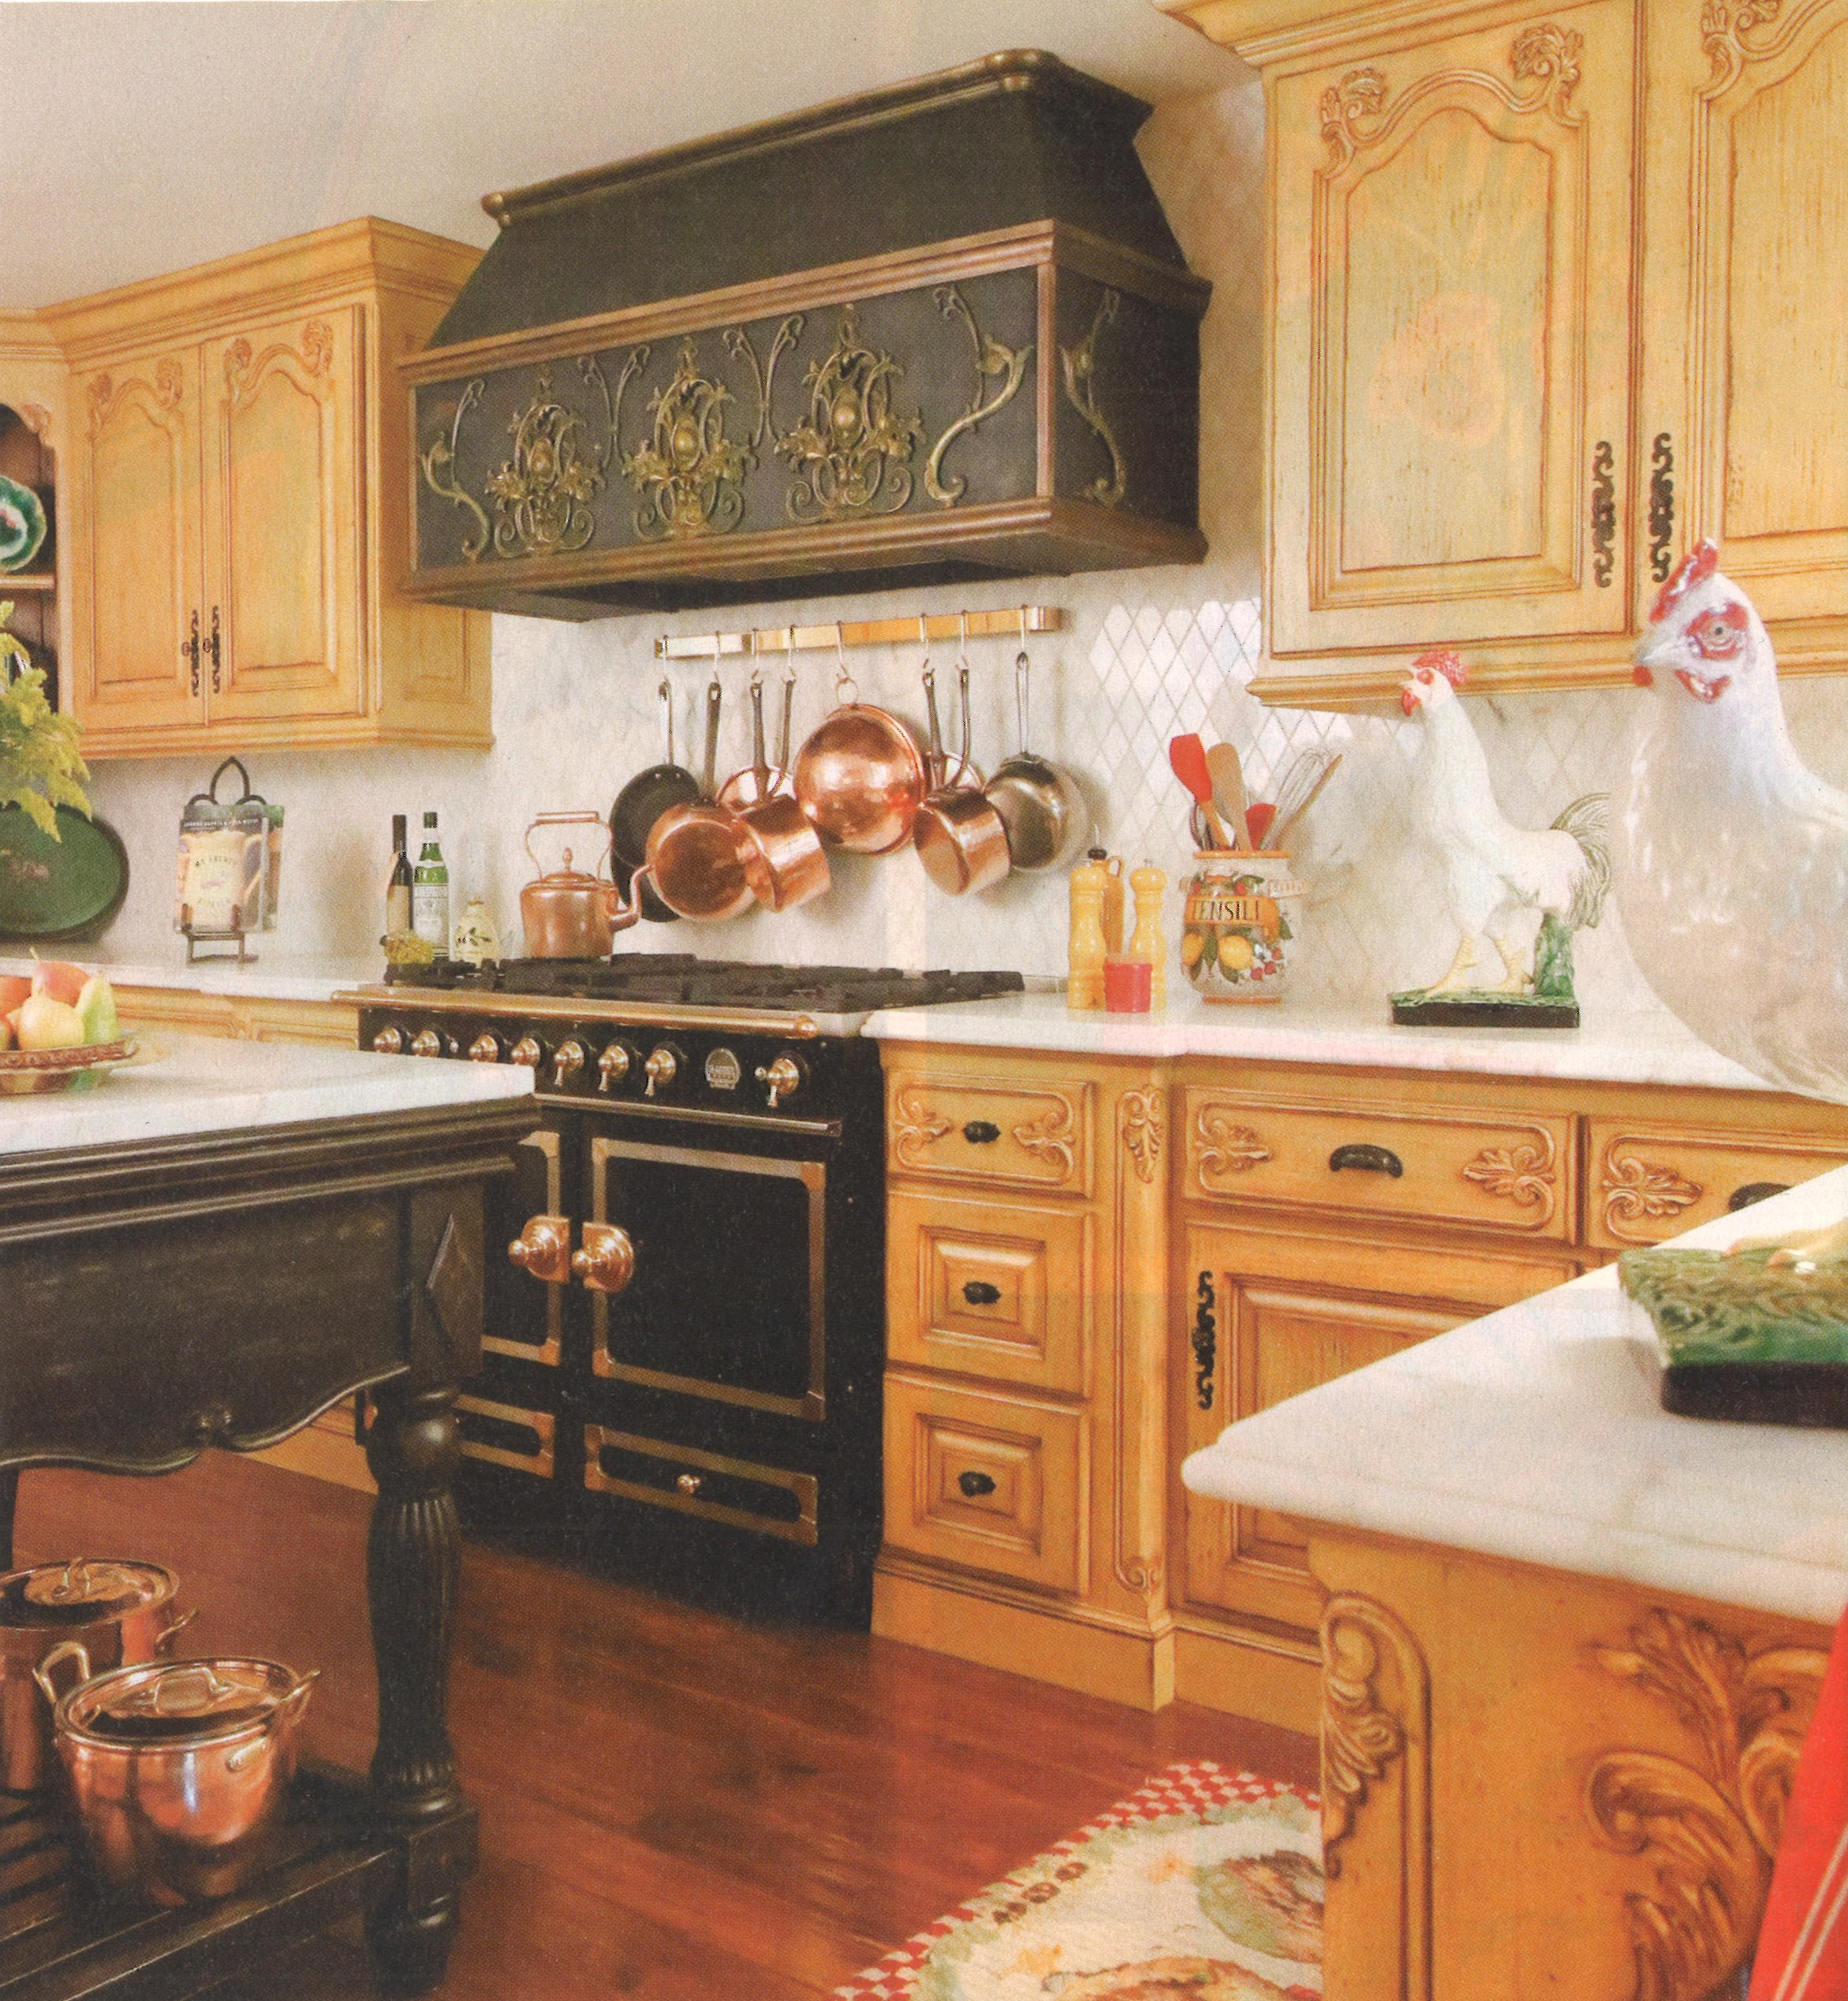 Cozy Country Kitchens - Jeffrey Pommer